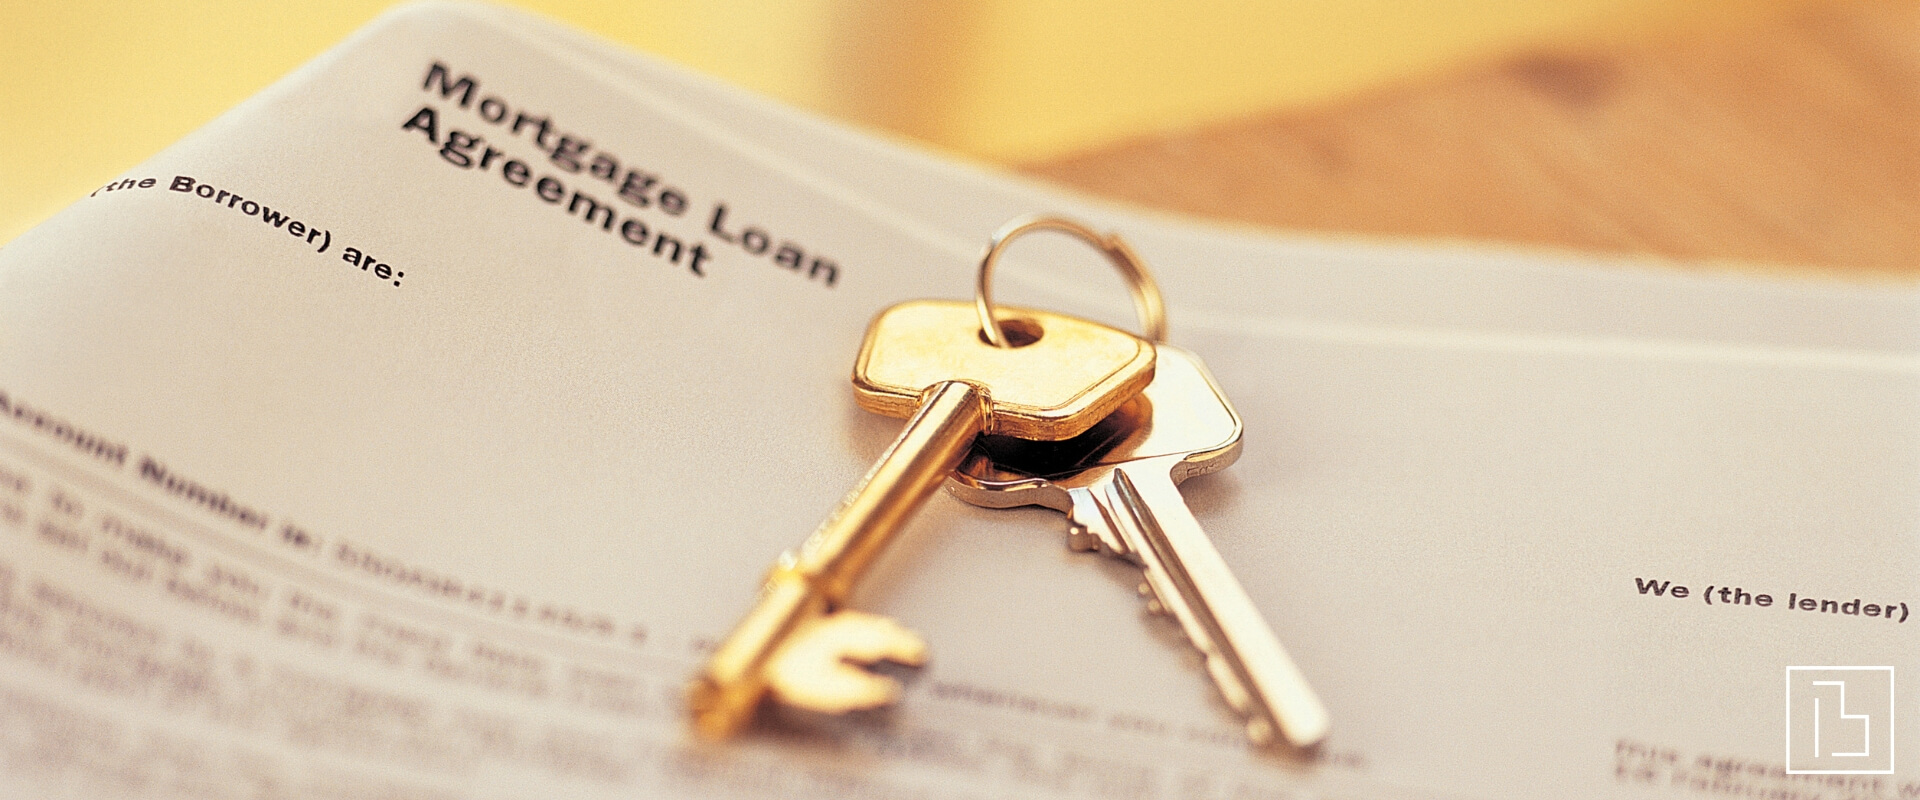 Set of keys on top of a mortgage document - Beachworks LLC